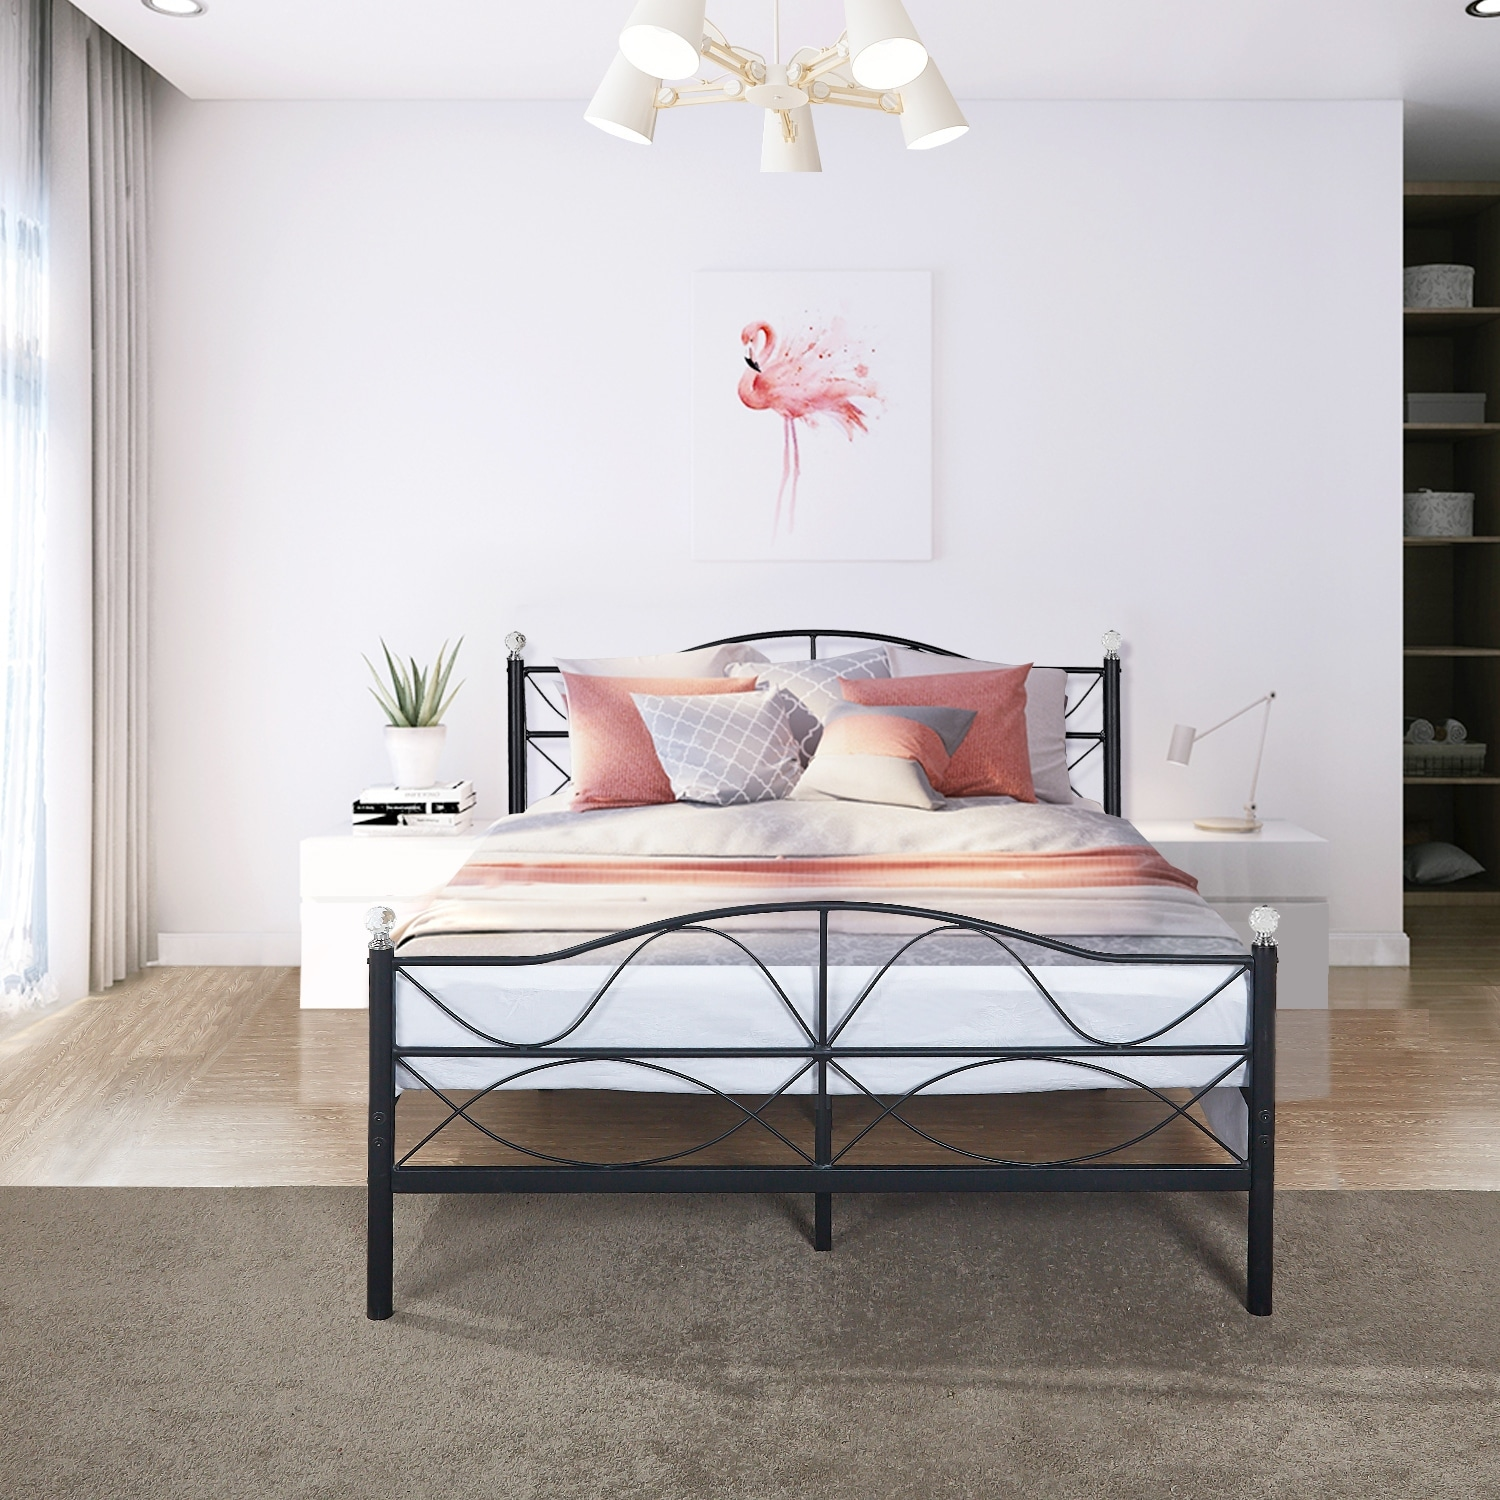 Metal Bed Headboards Vecelo Metal Bed Frames Mattress Fundation With Headboard And Footboard